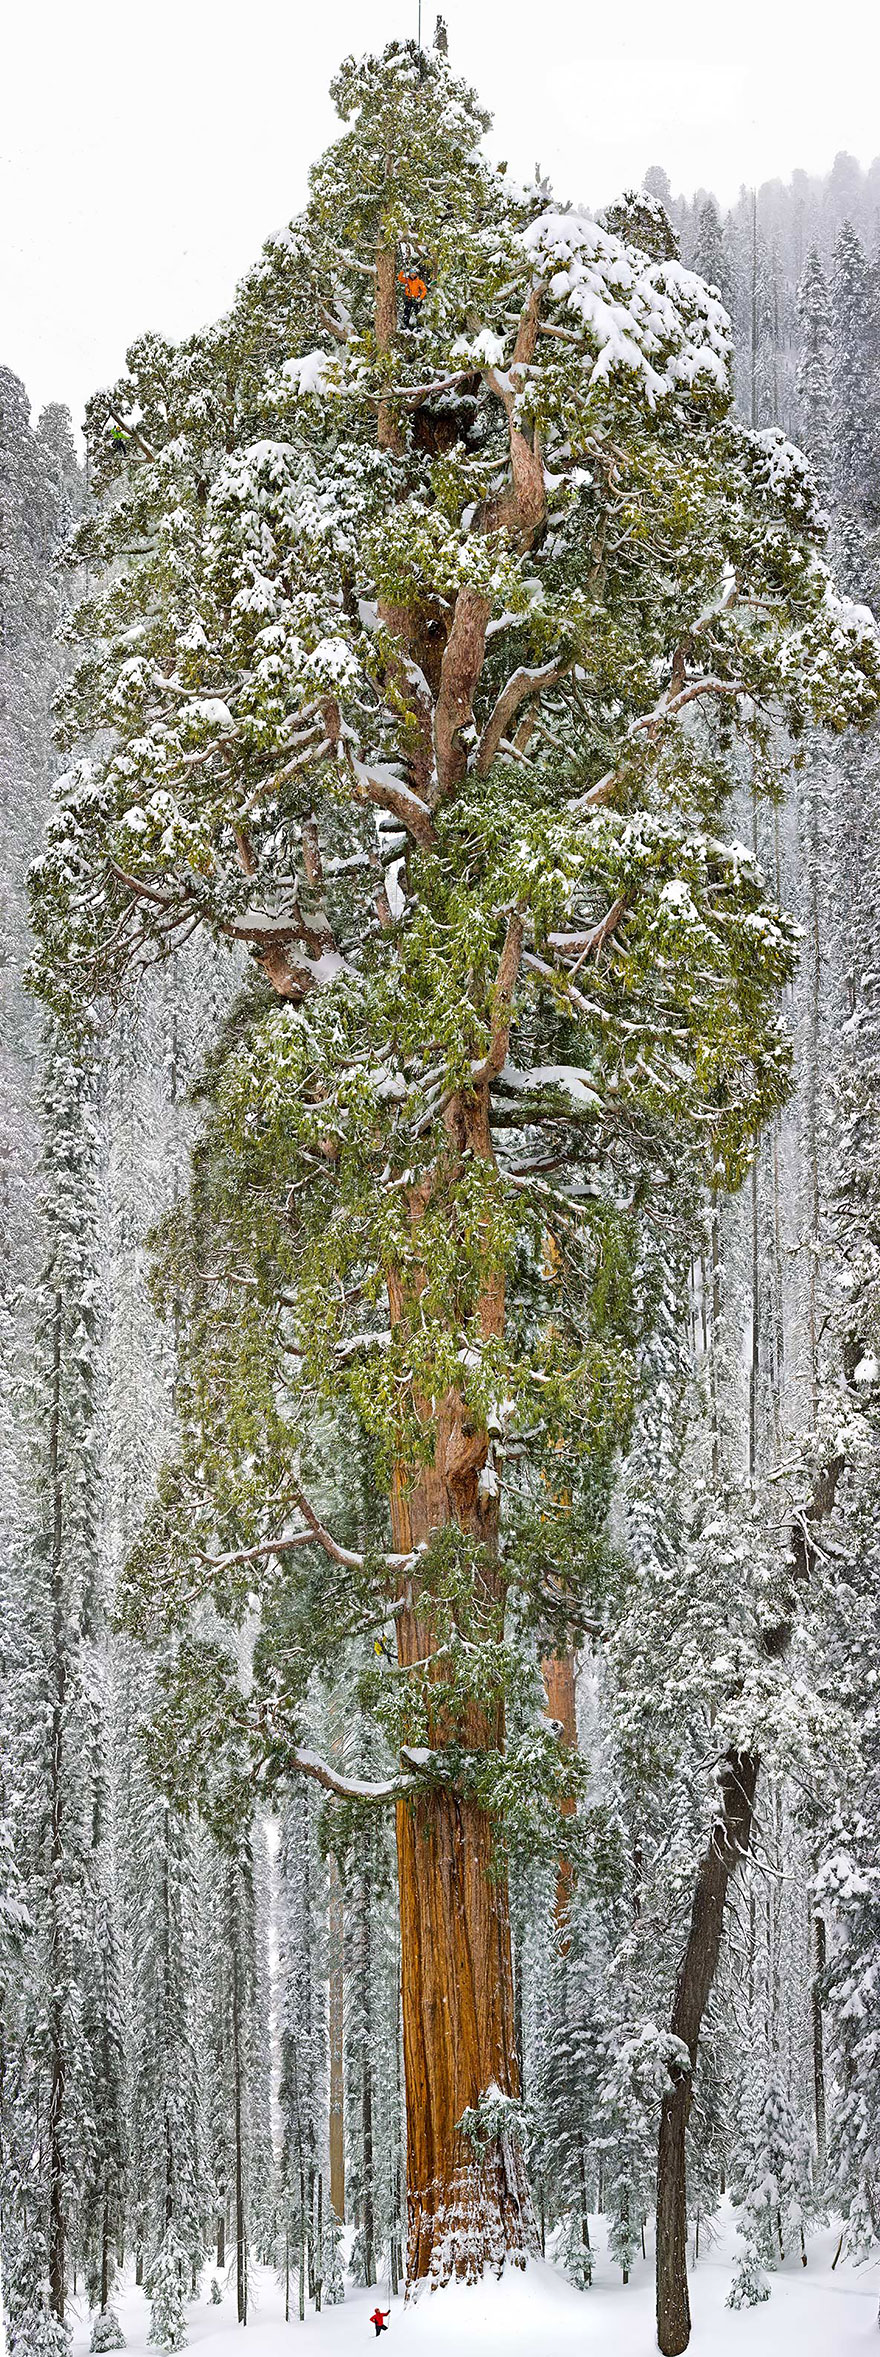 12-Largest-Giant-Sequoia